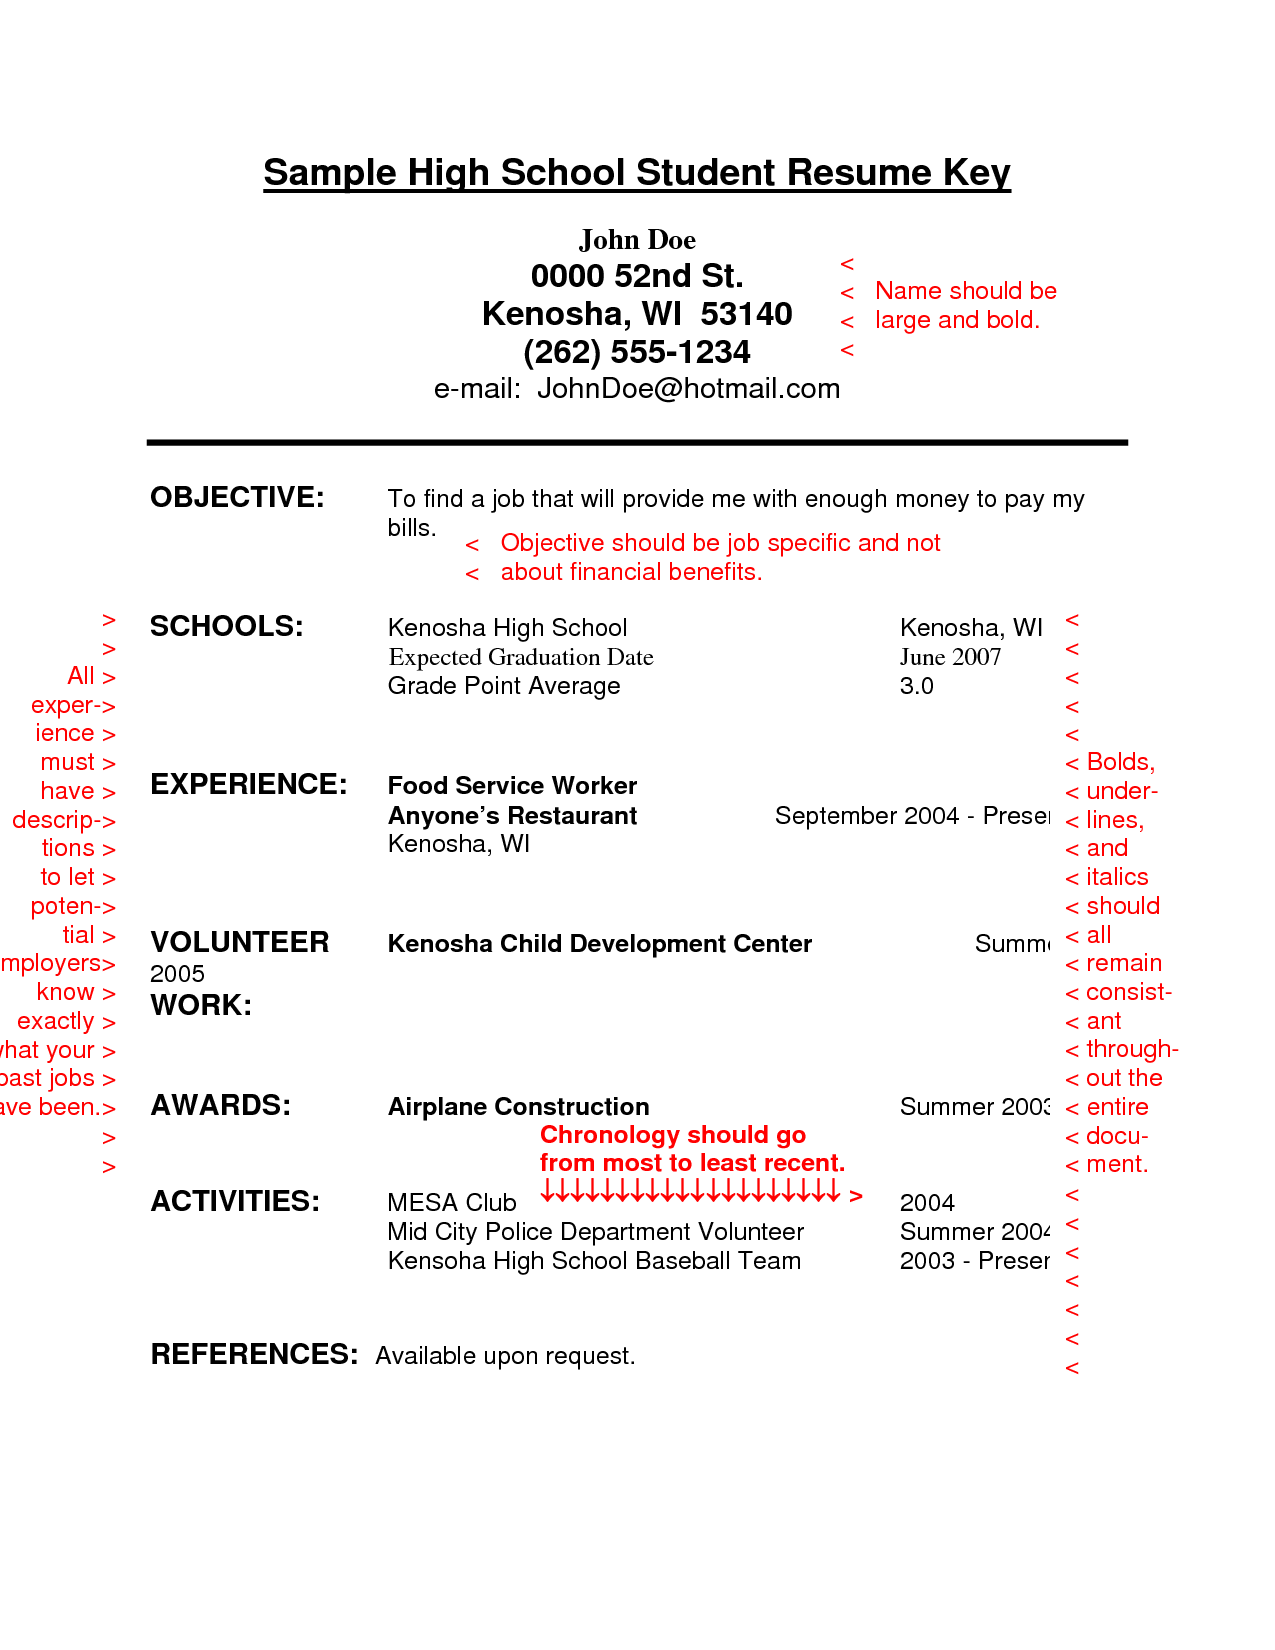 resume sample for high school students with no experience httpwww - Sample Resume For High School Student